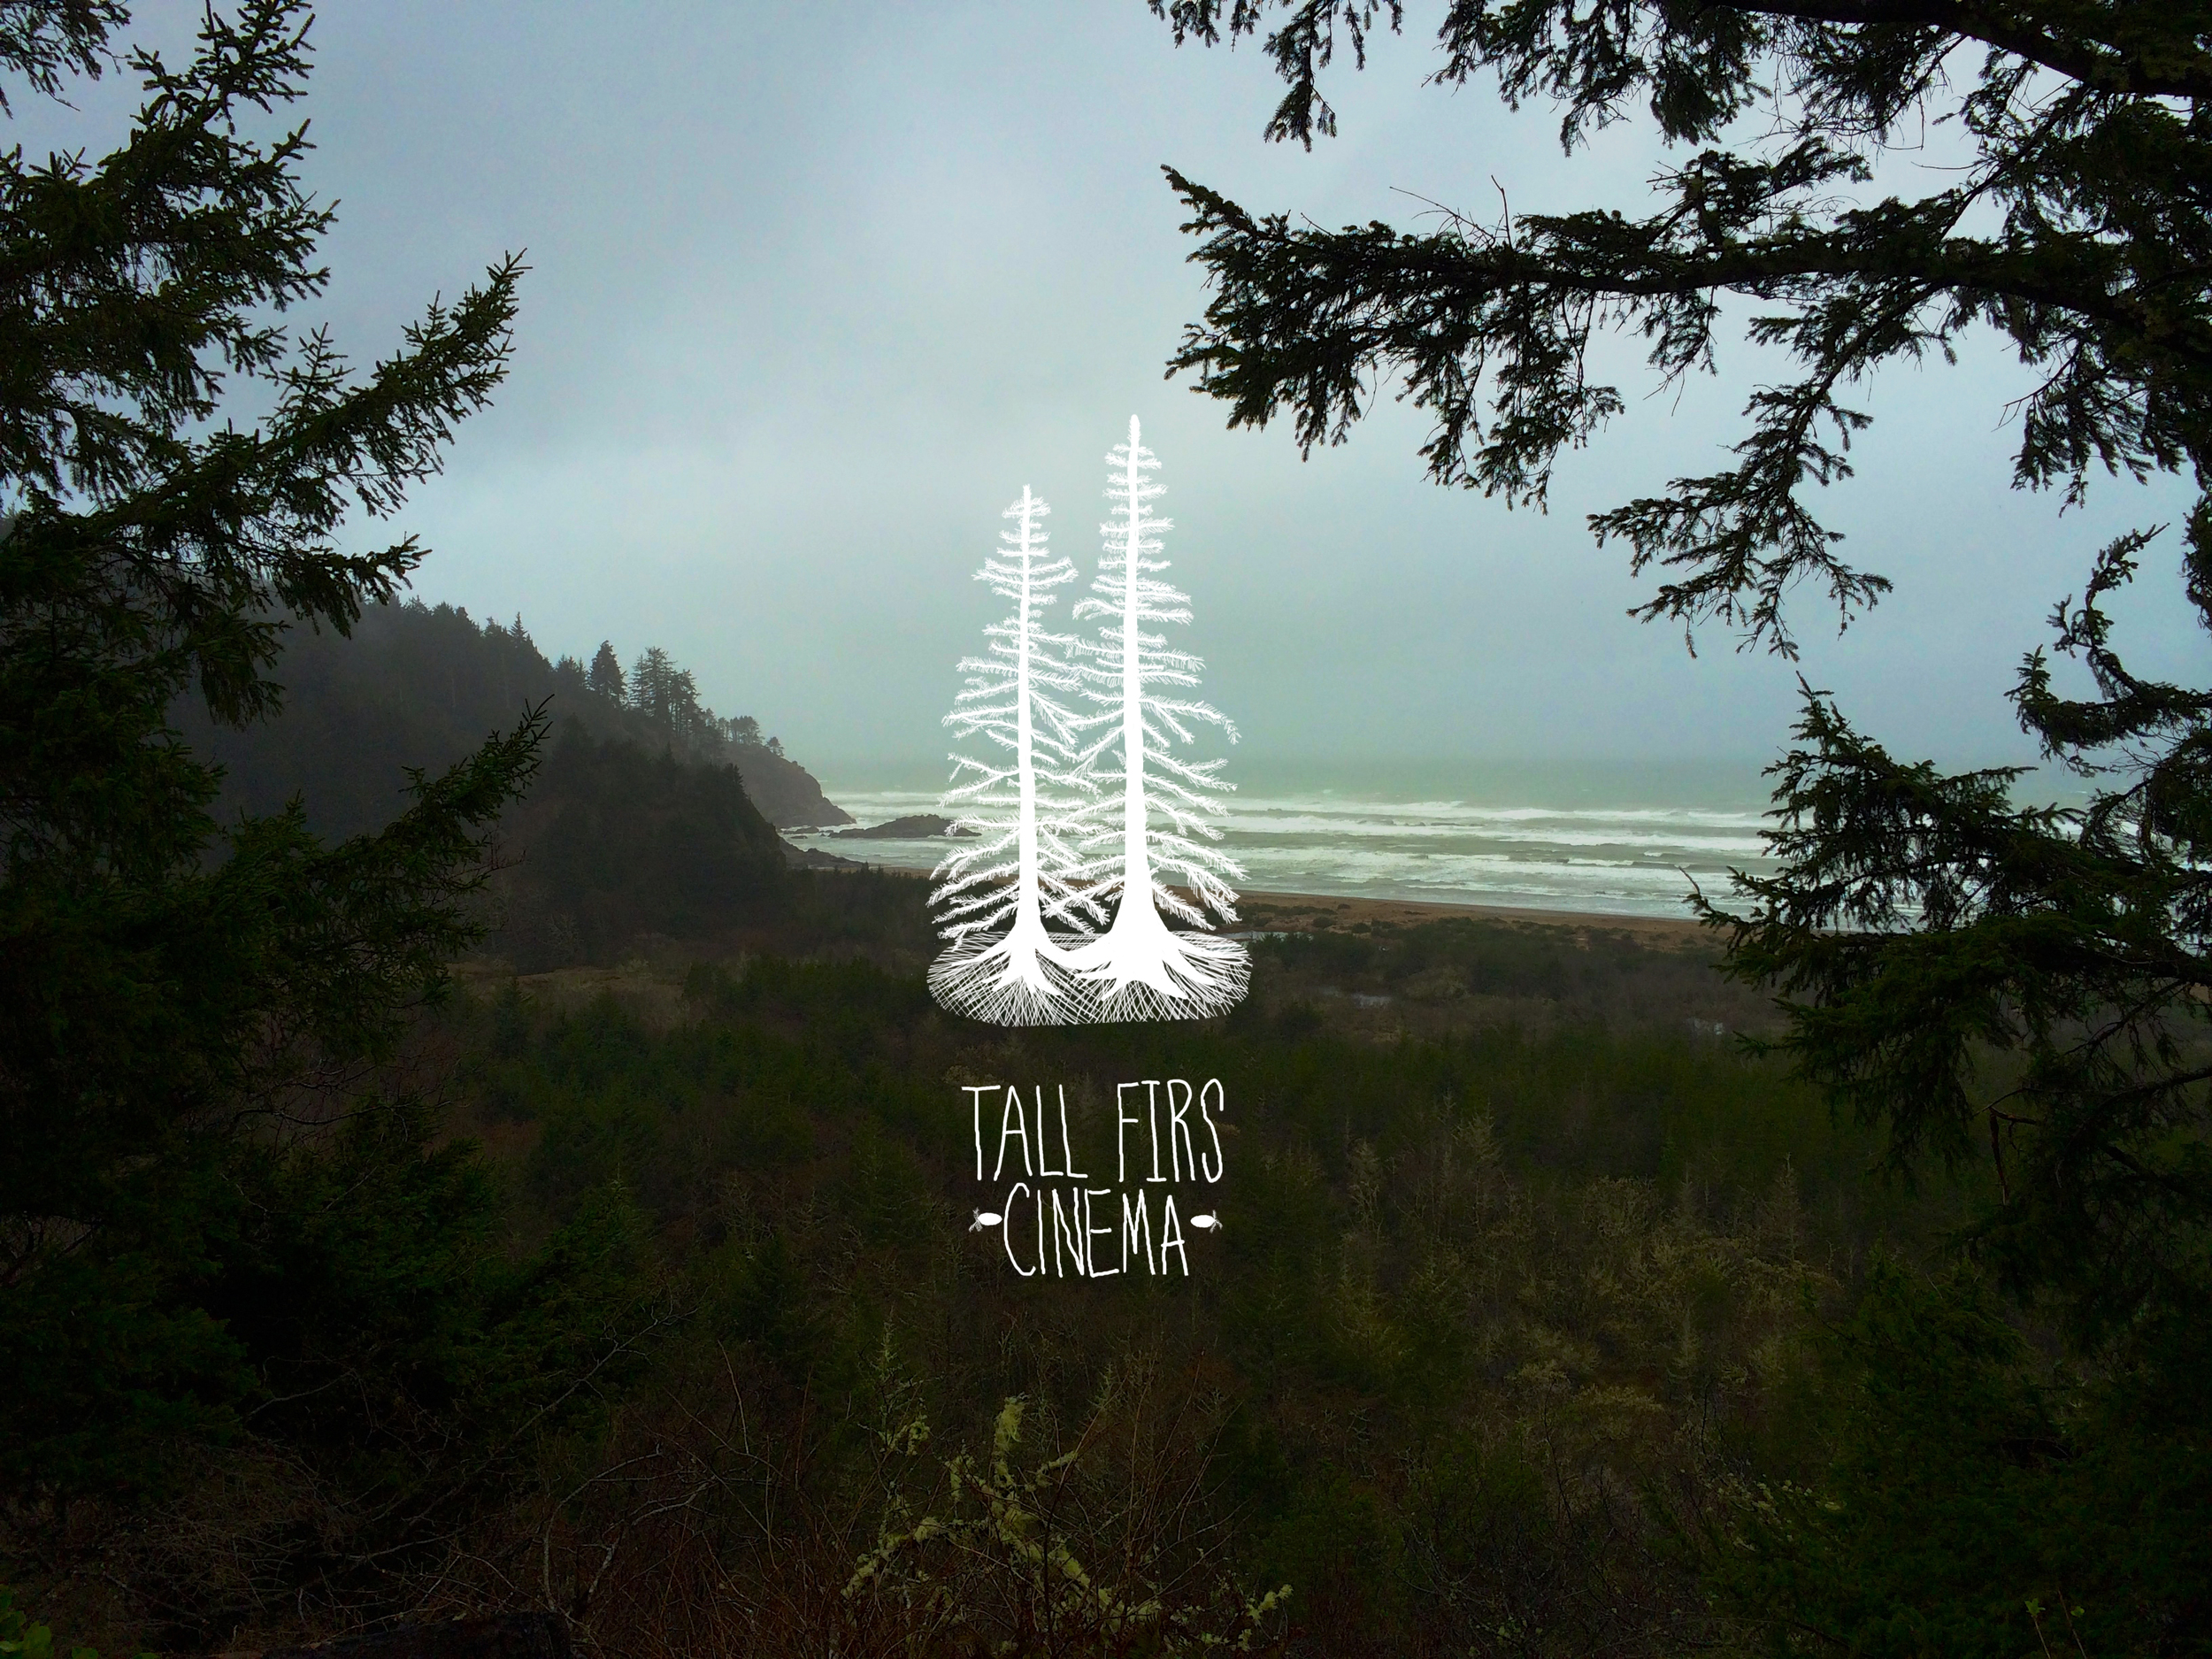 tall firs logo with landscape.jpg